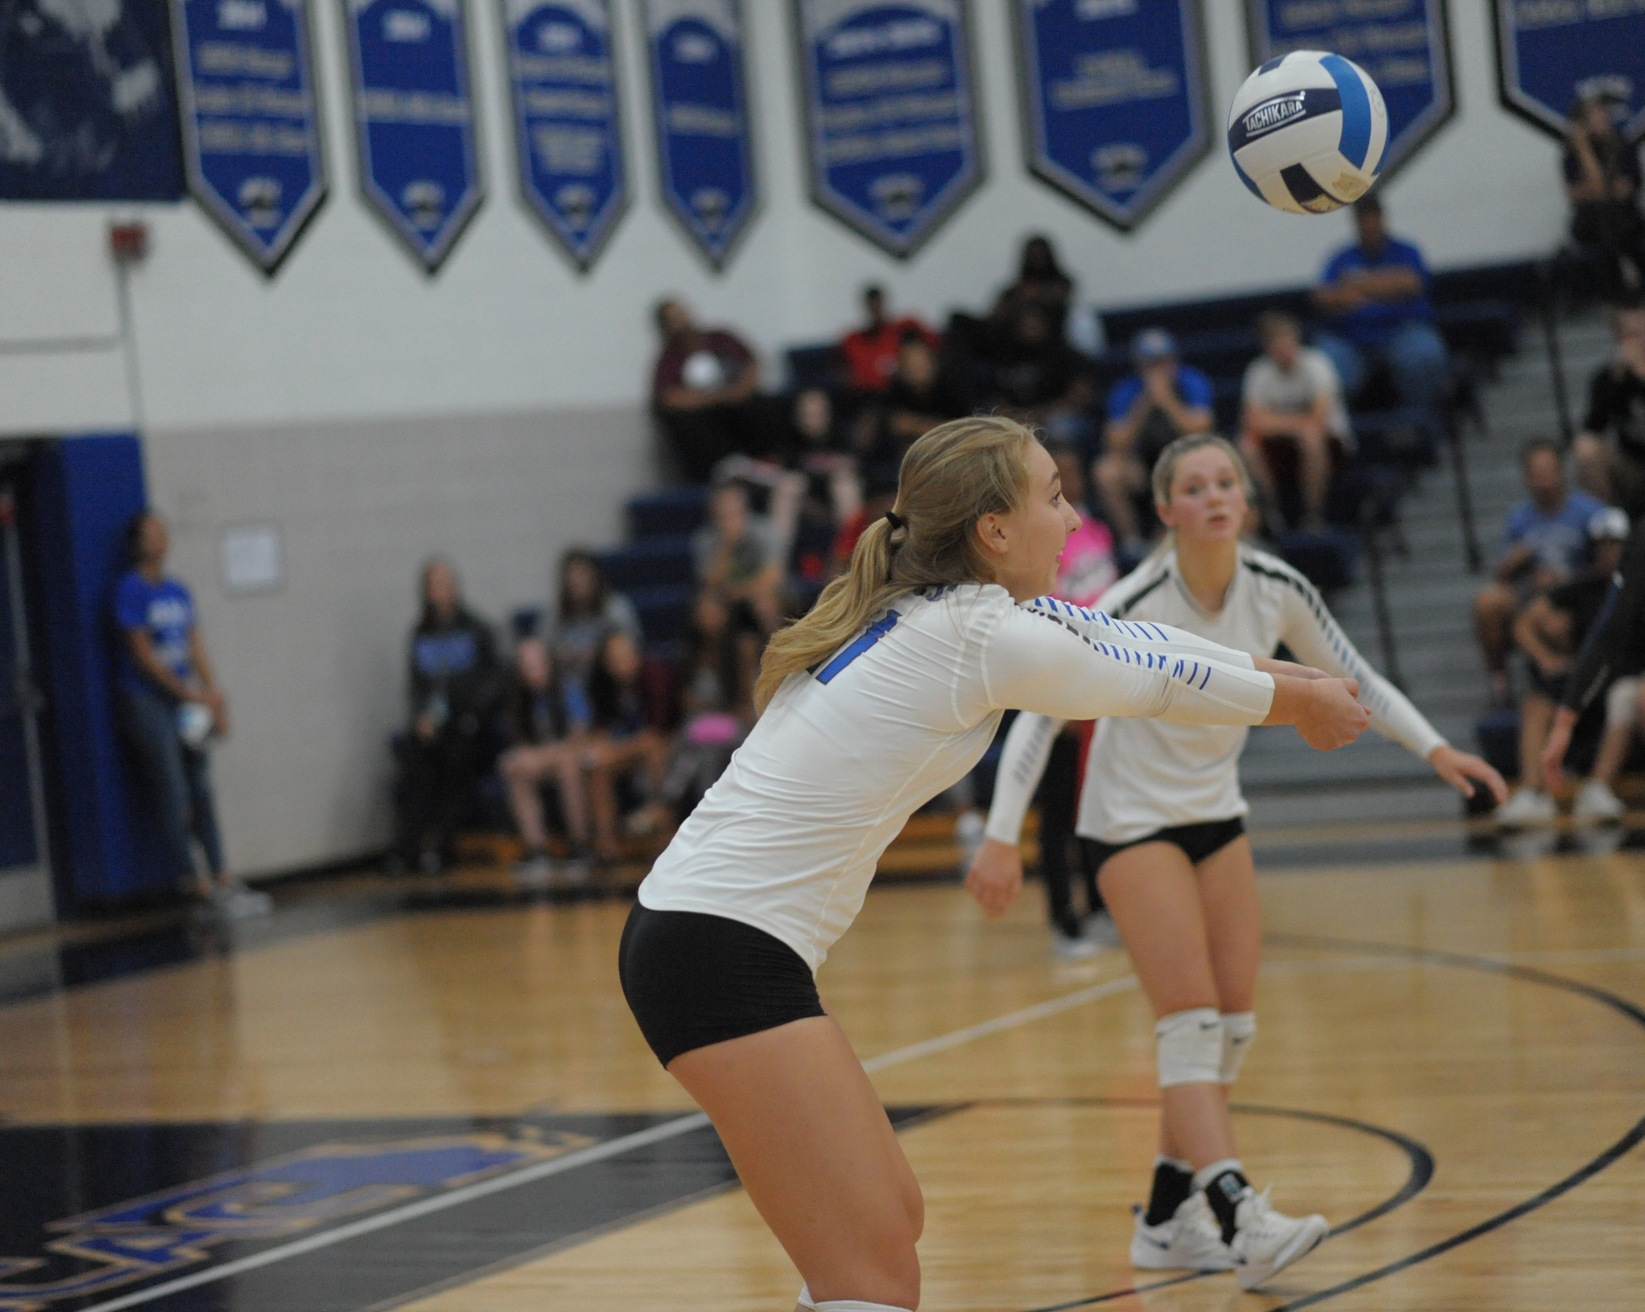 DMACC volleyball team drops 3-0 decision to Northeast